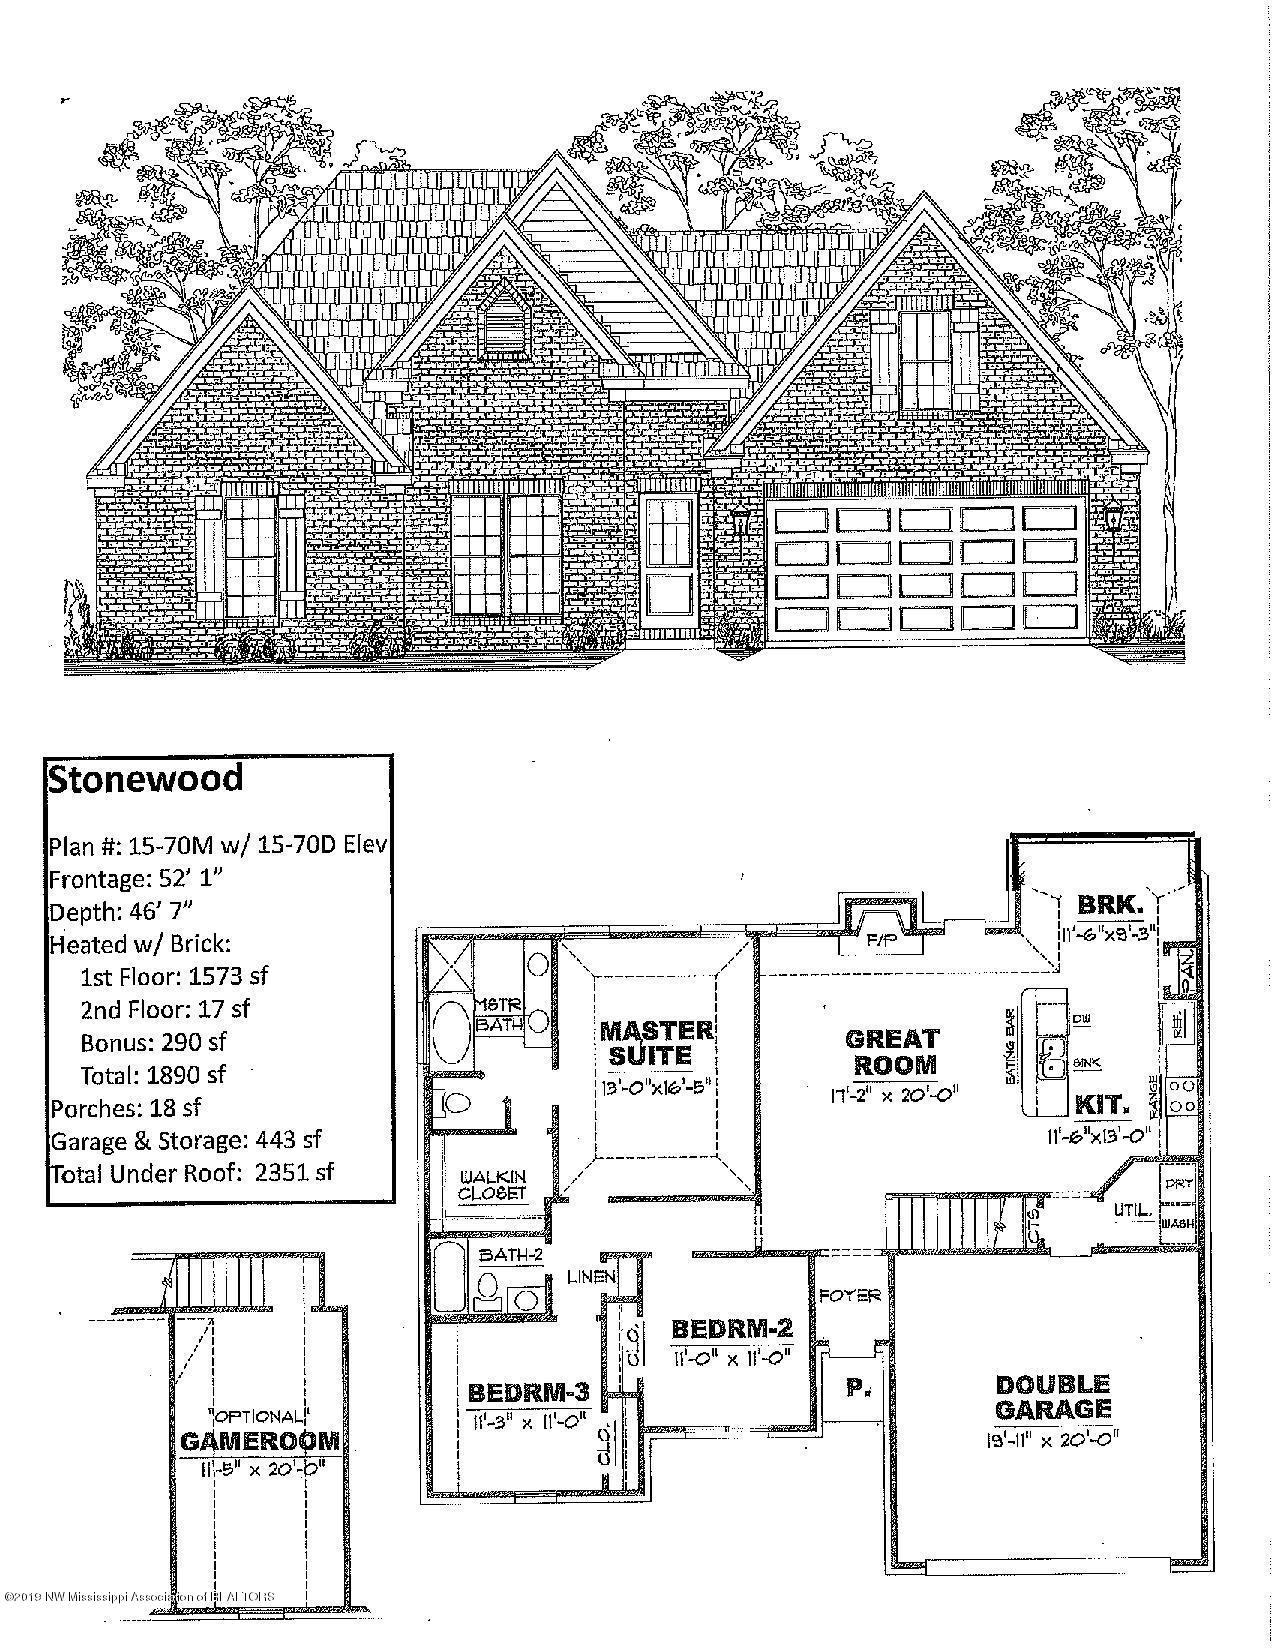 3790 W Dawnwood Circle, Southaven, Mississippi